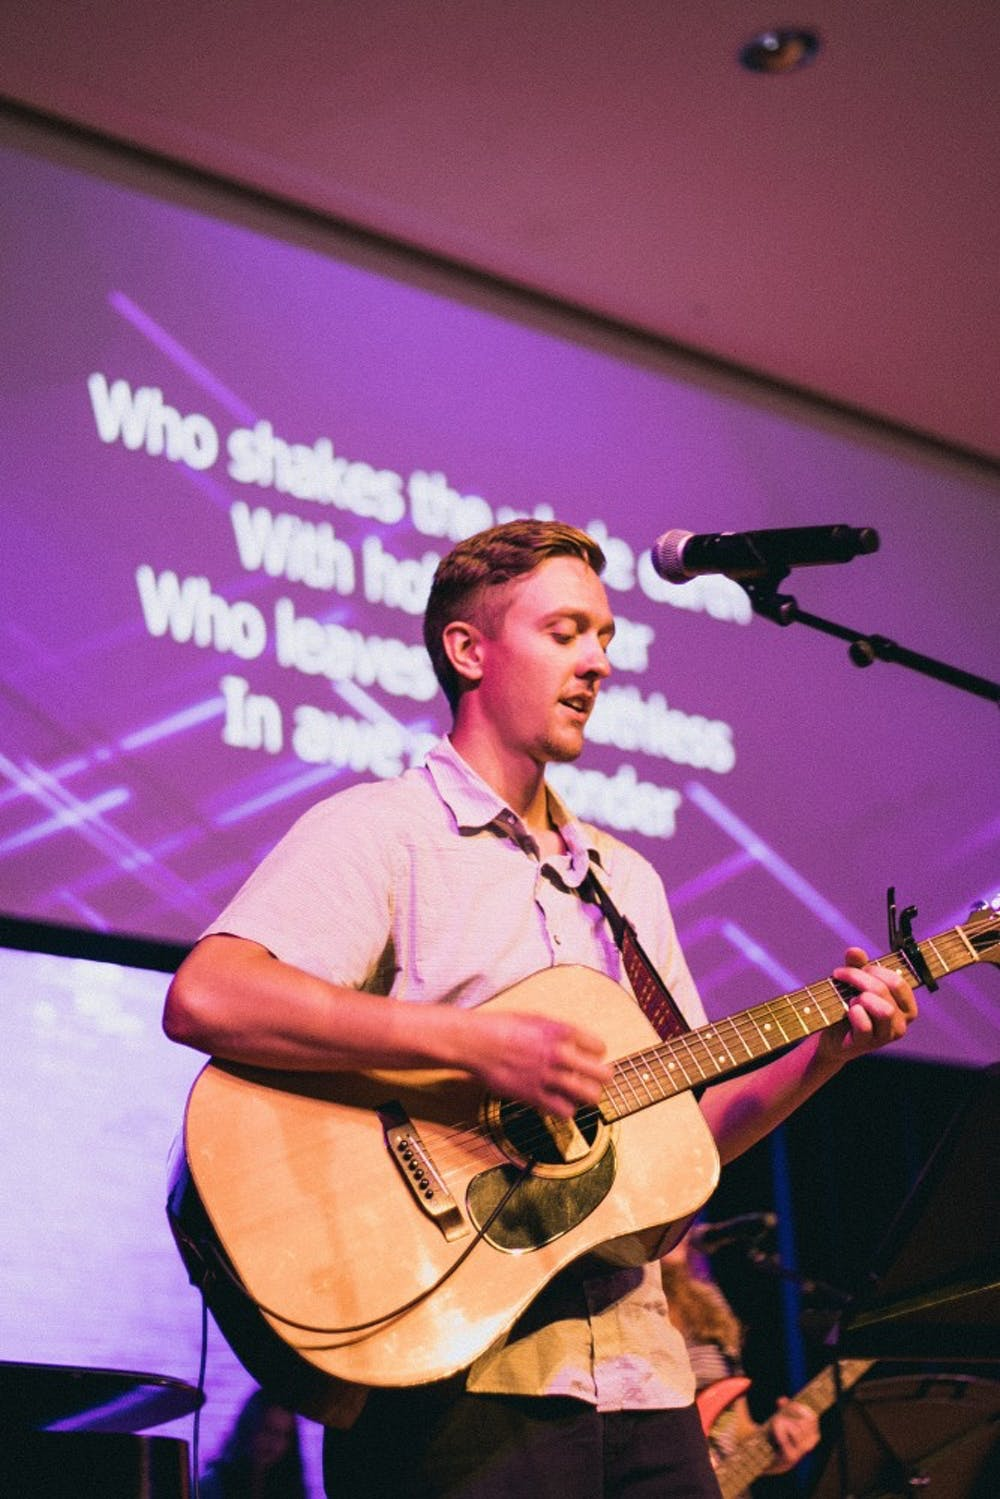 Six chapel bands unite Taylor community in worship